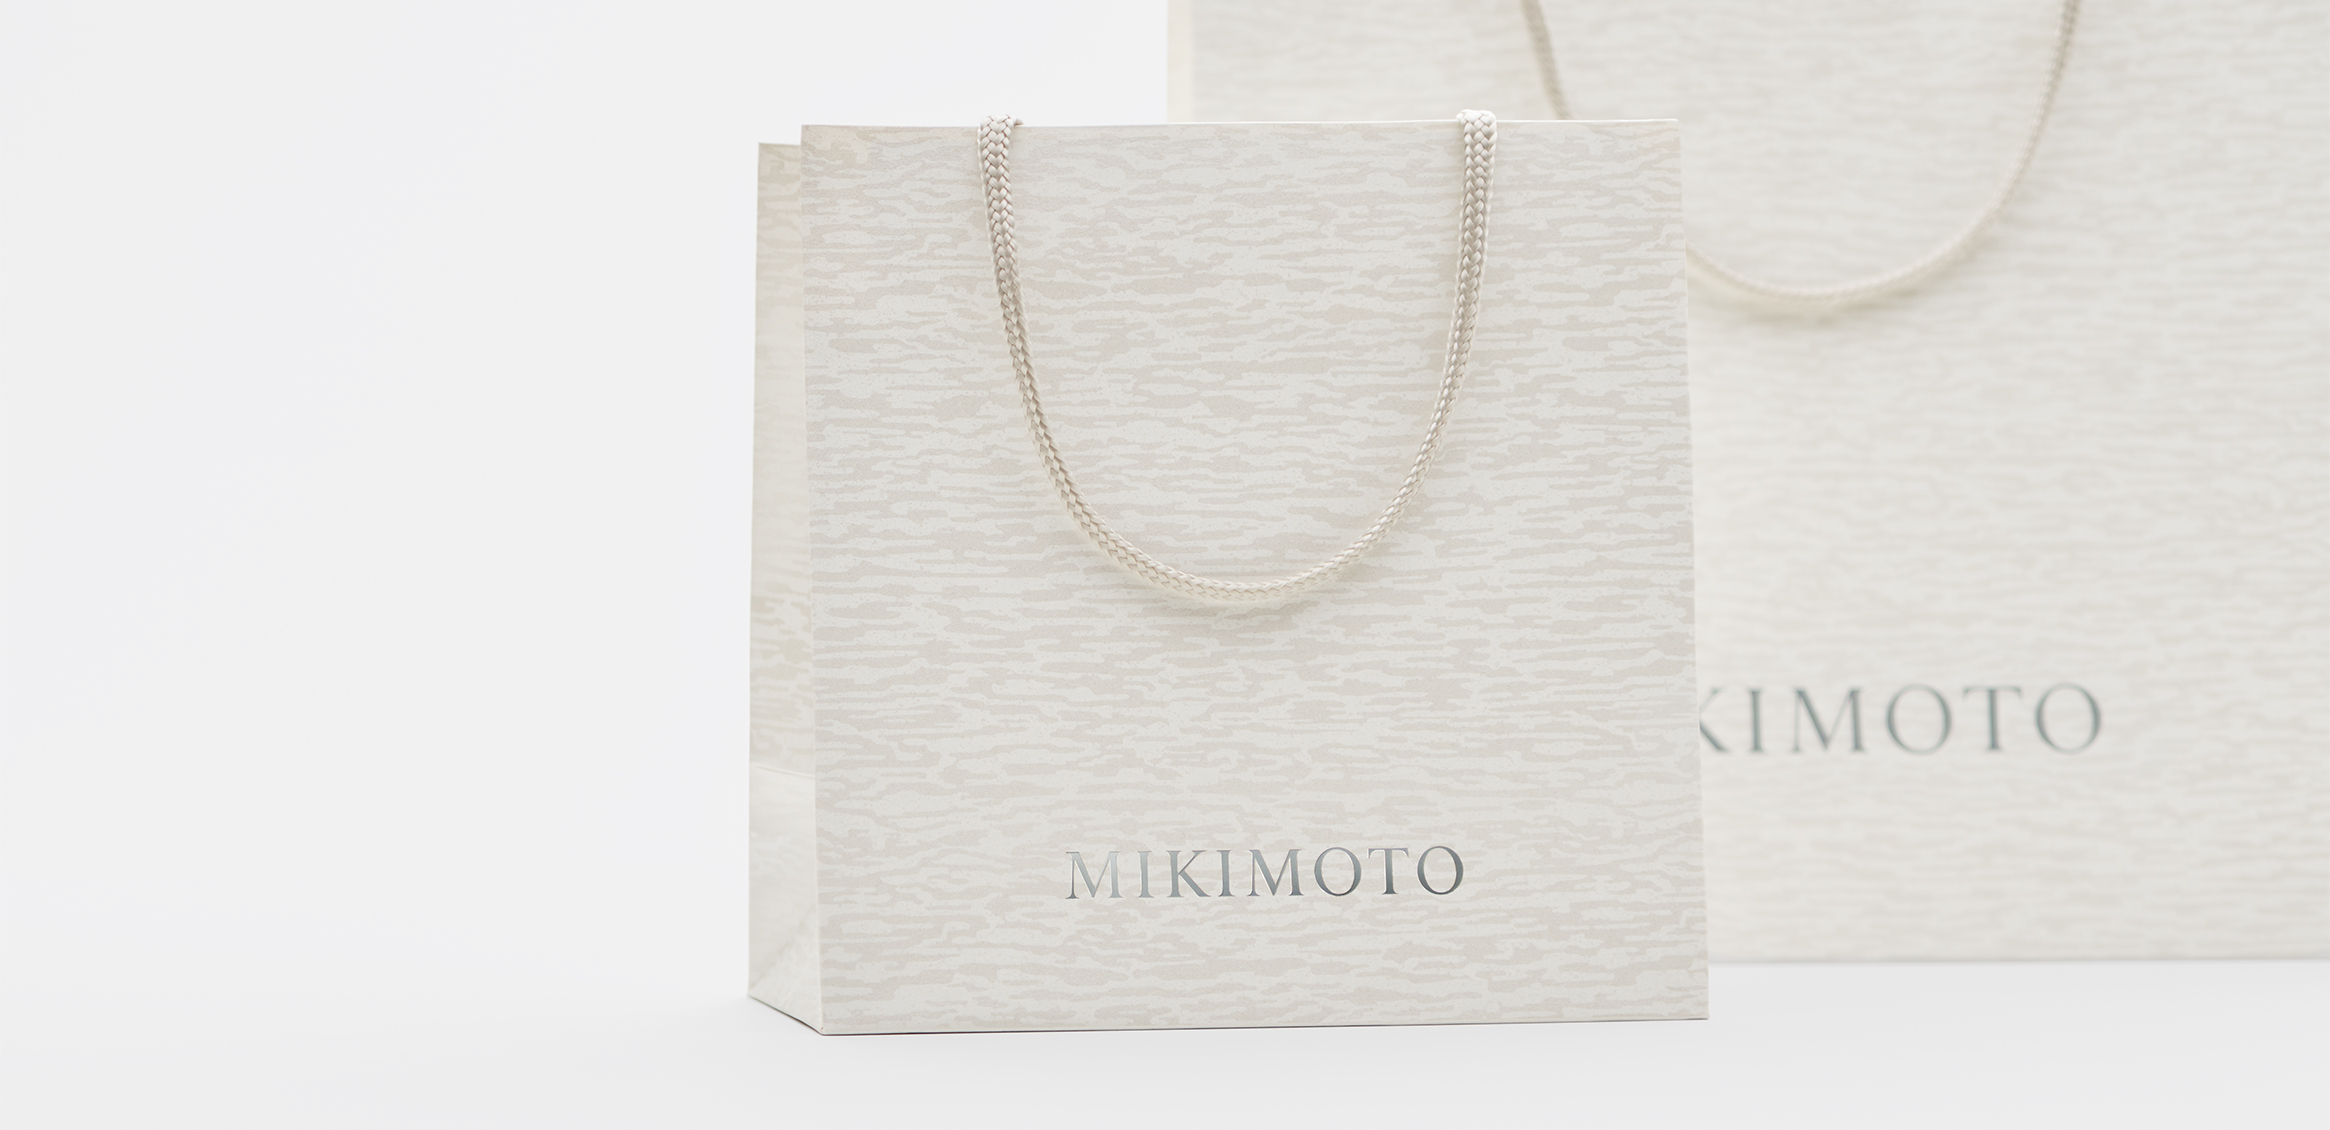 MIKIMOTO Package6枚目